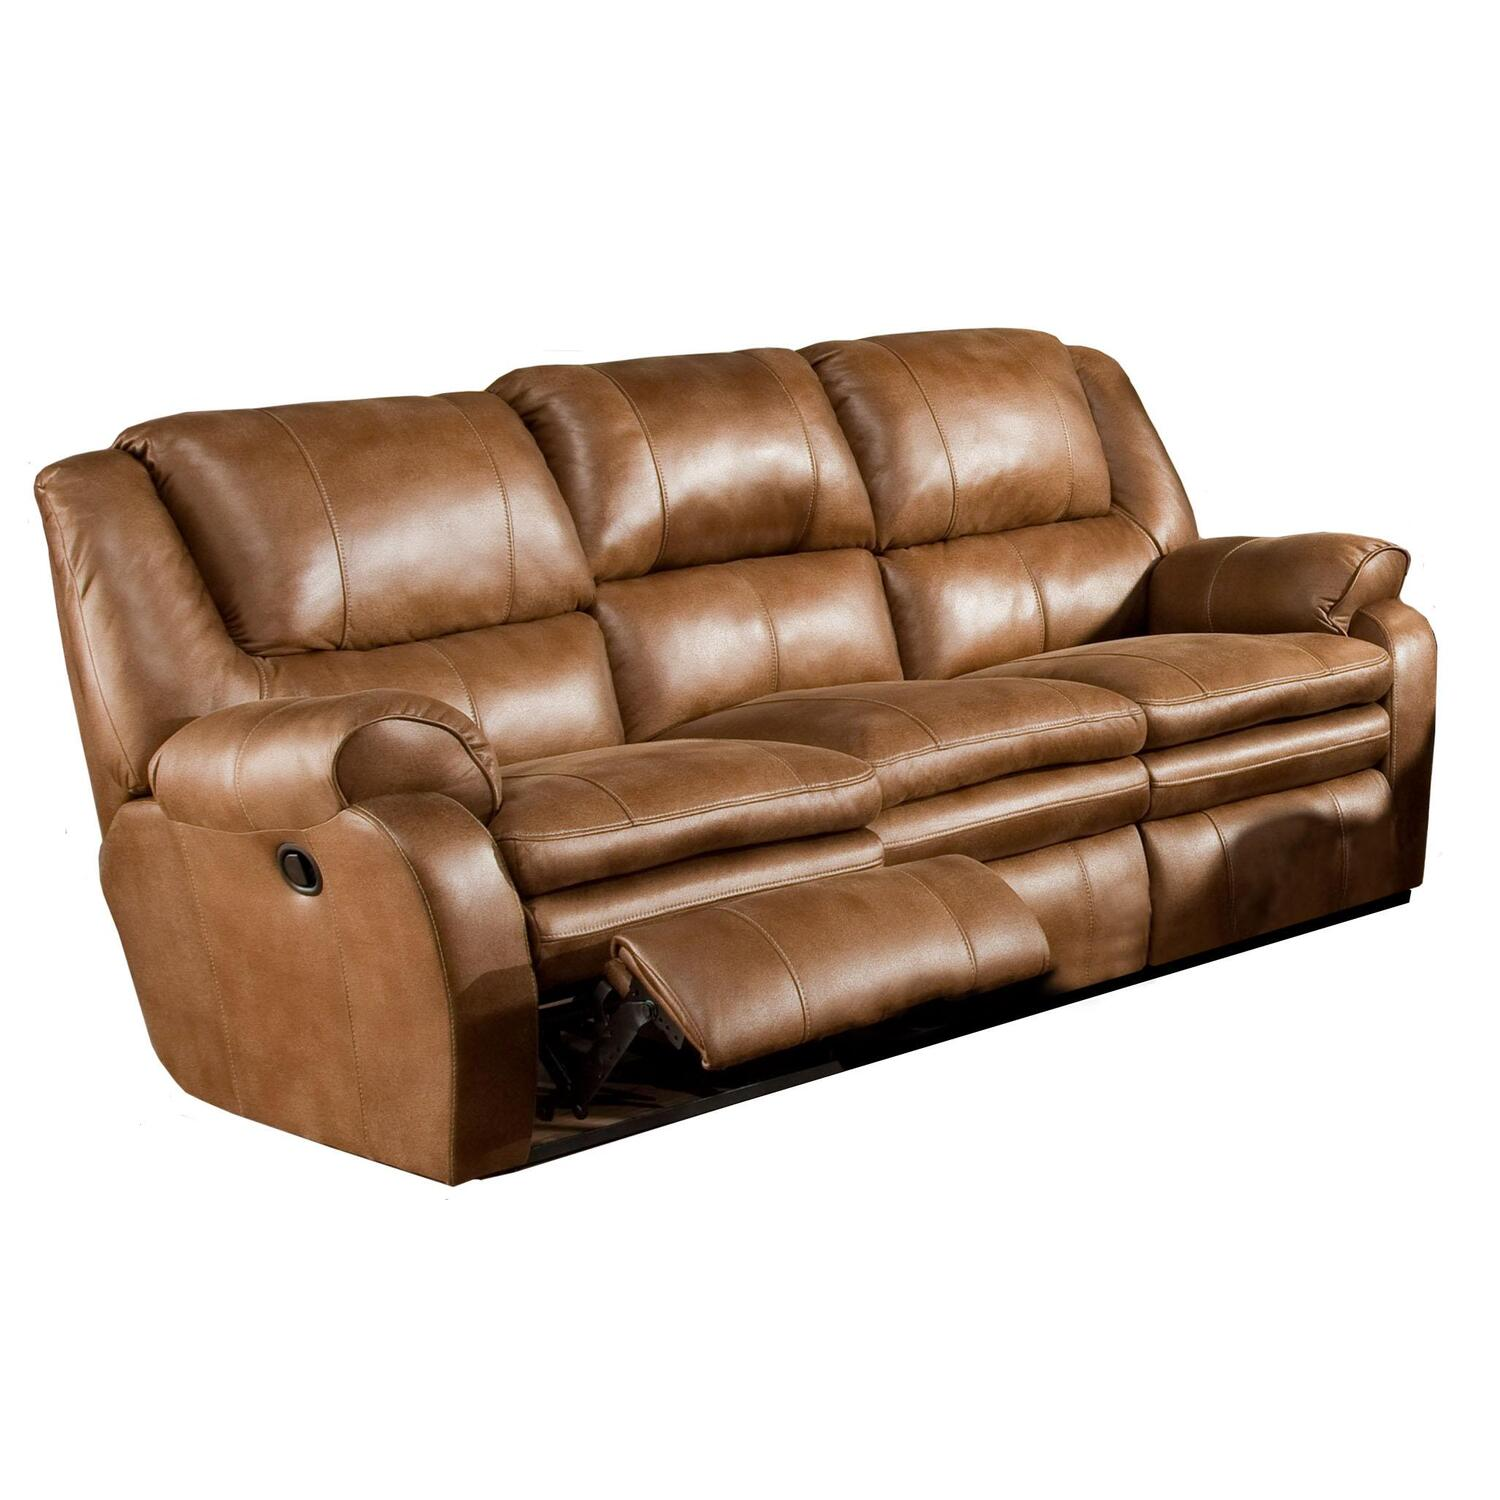 Catnapper reclining sofa reviews catnapper siesta lay flat reclining fabric sofa in porcini Catnapper loveseat recliner